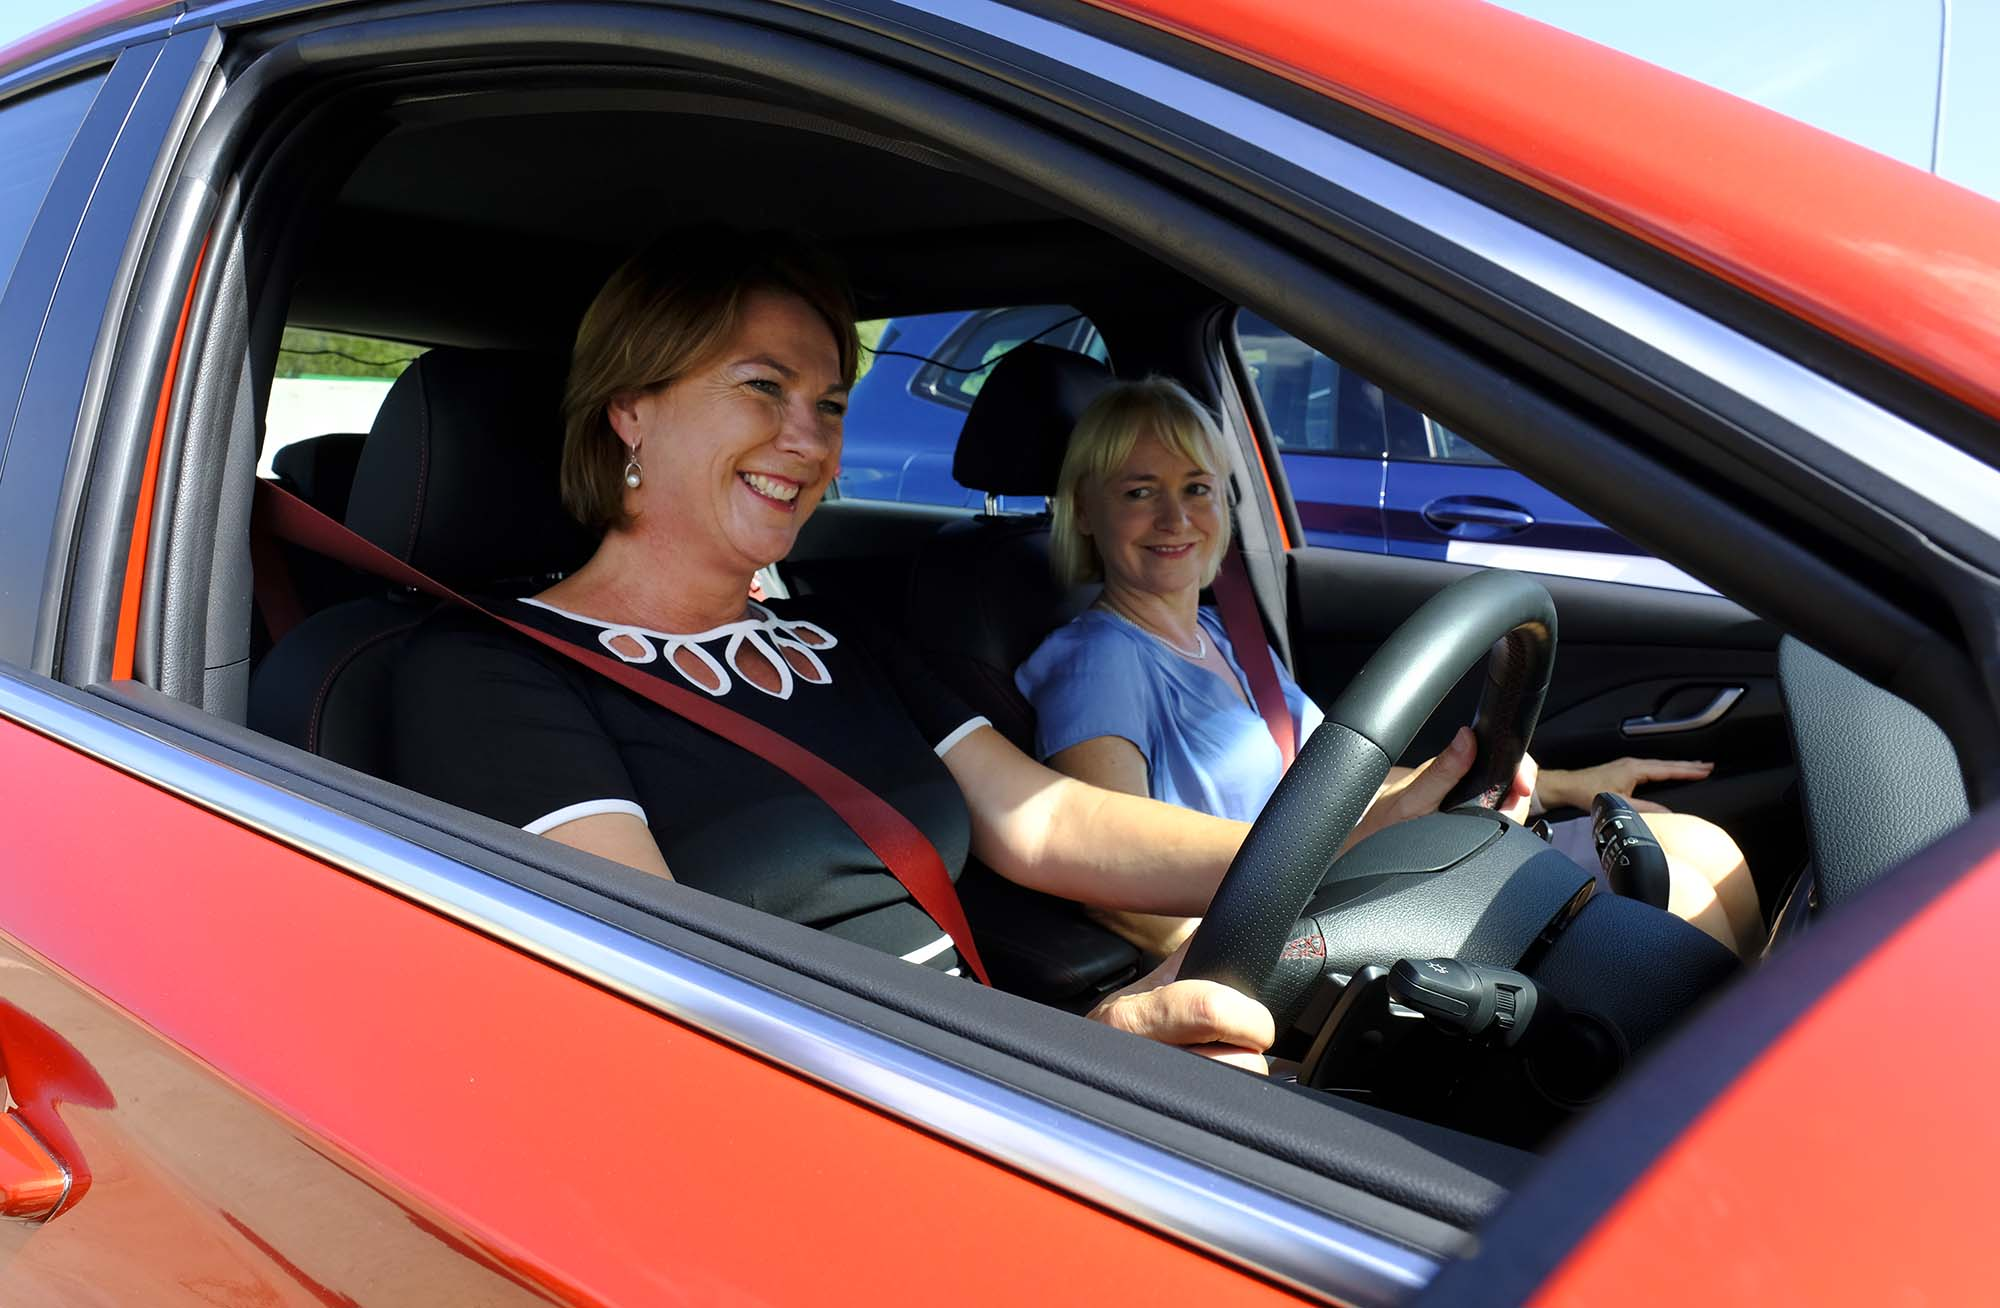 he Minister for Roads, Maritime and Freight, Melinda Pavey, announced a new trial into autonomous cars.